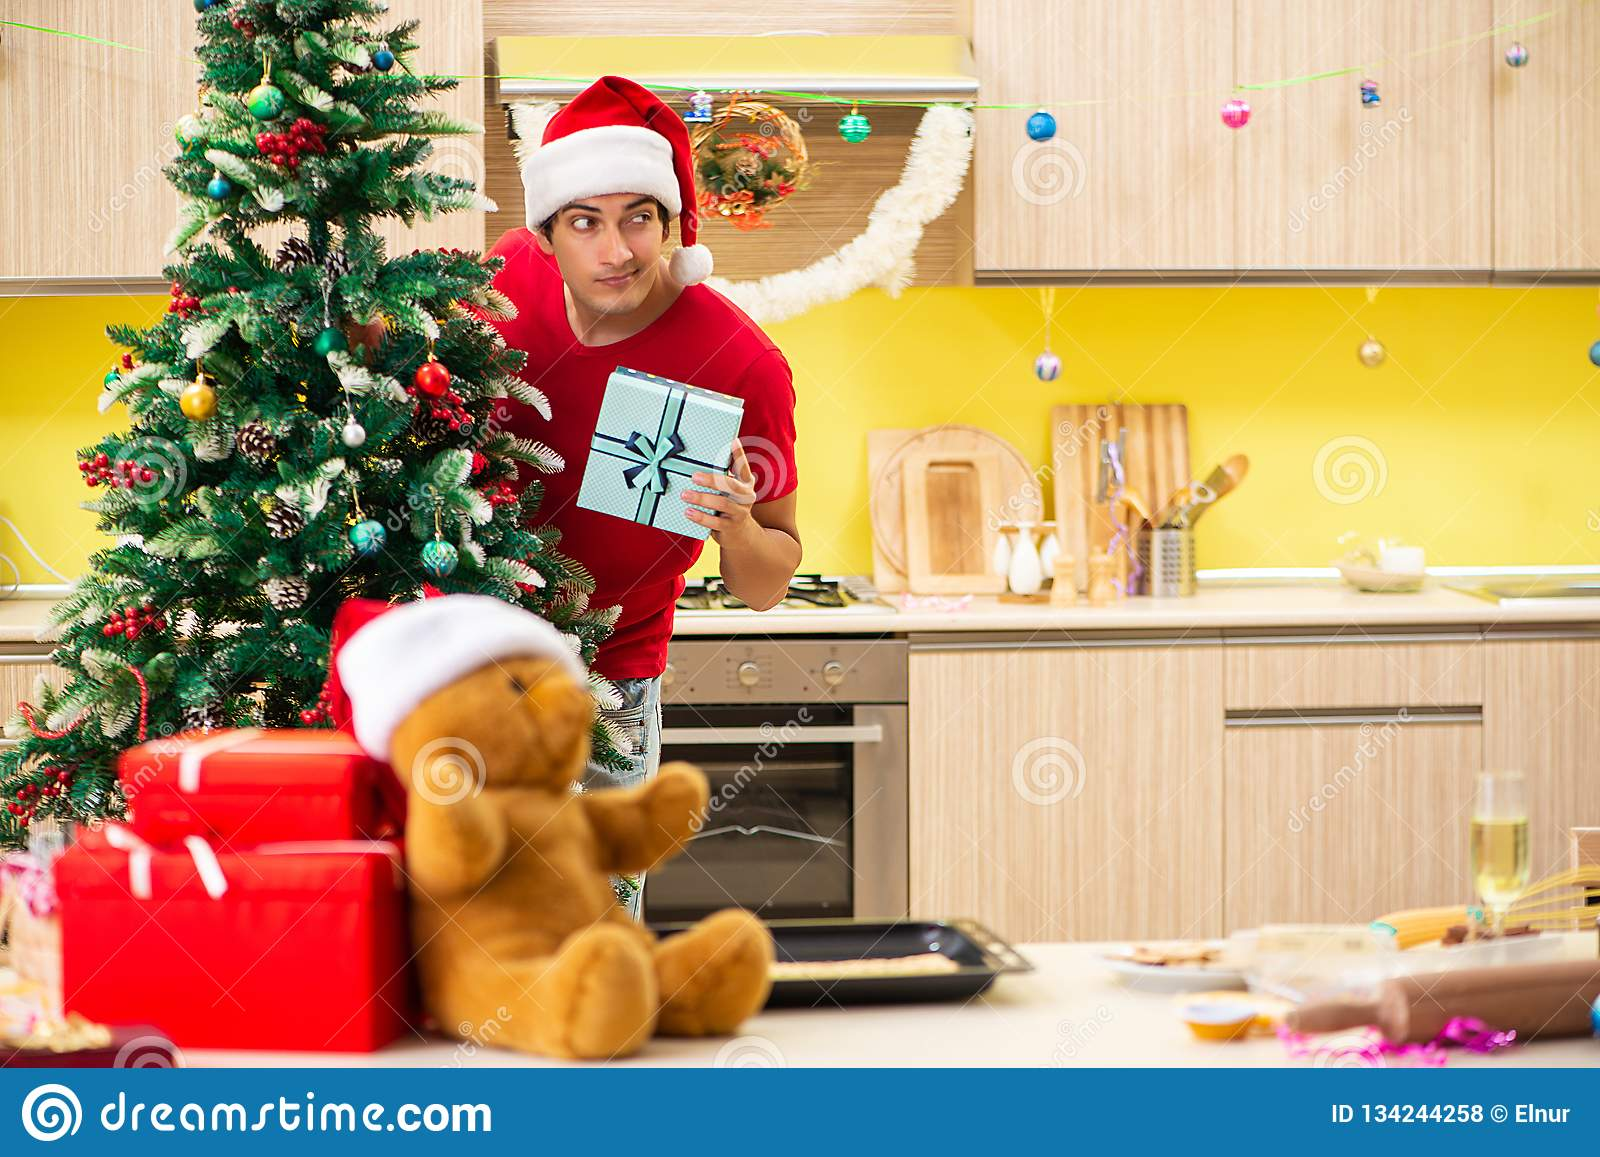 The young man celebrating christmas in kitchen